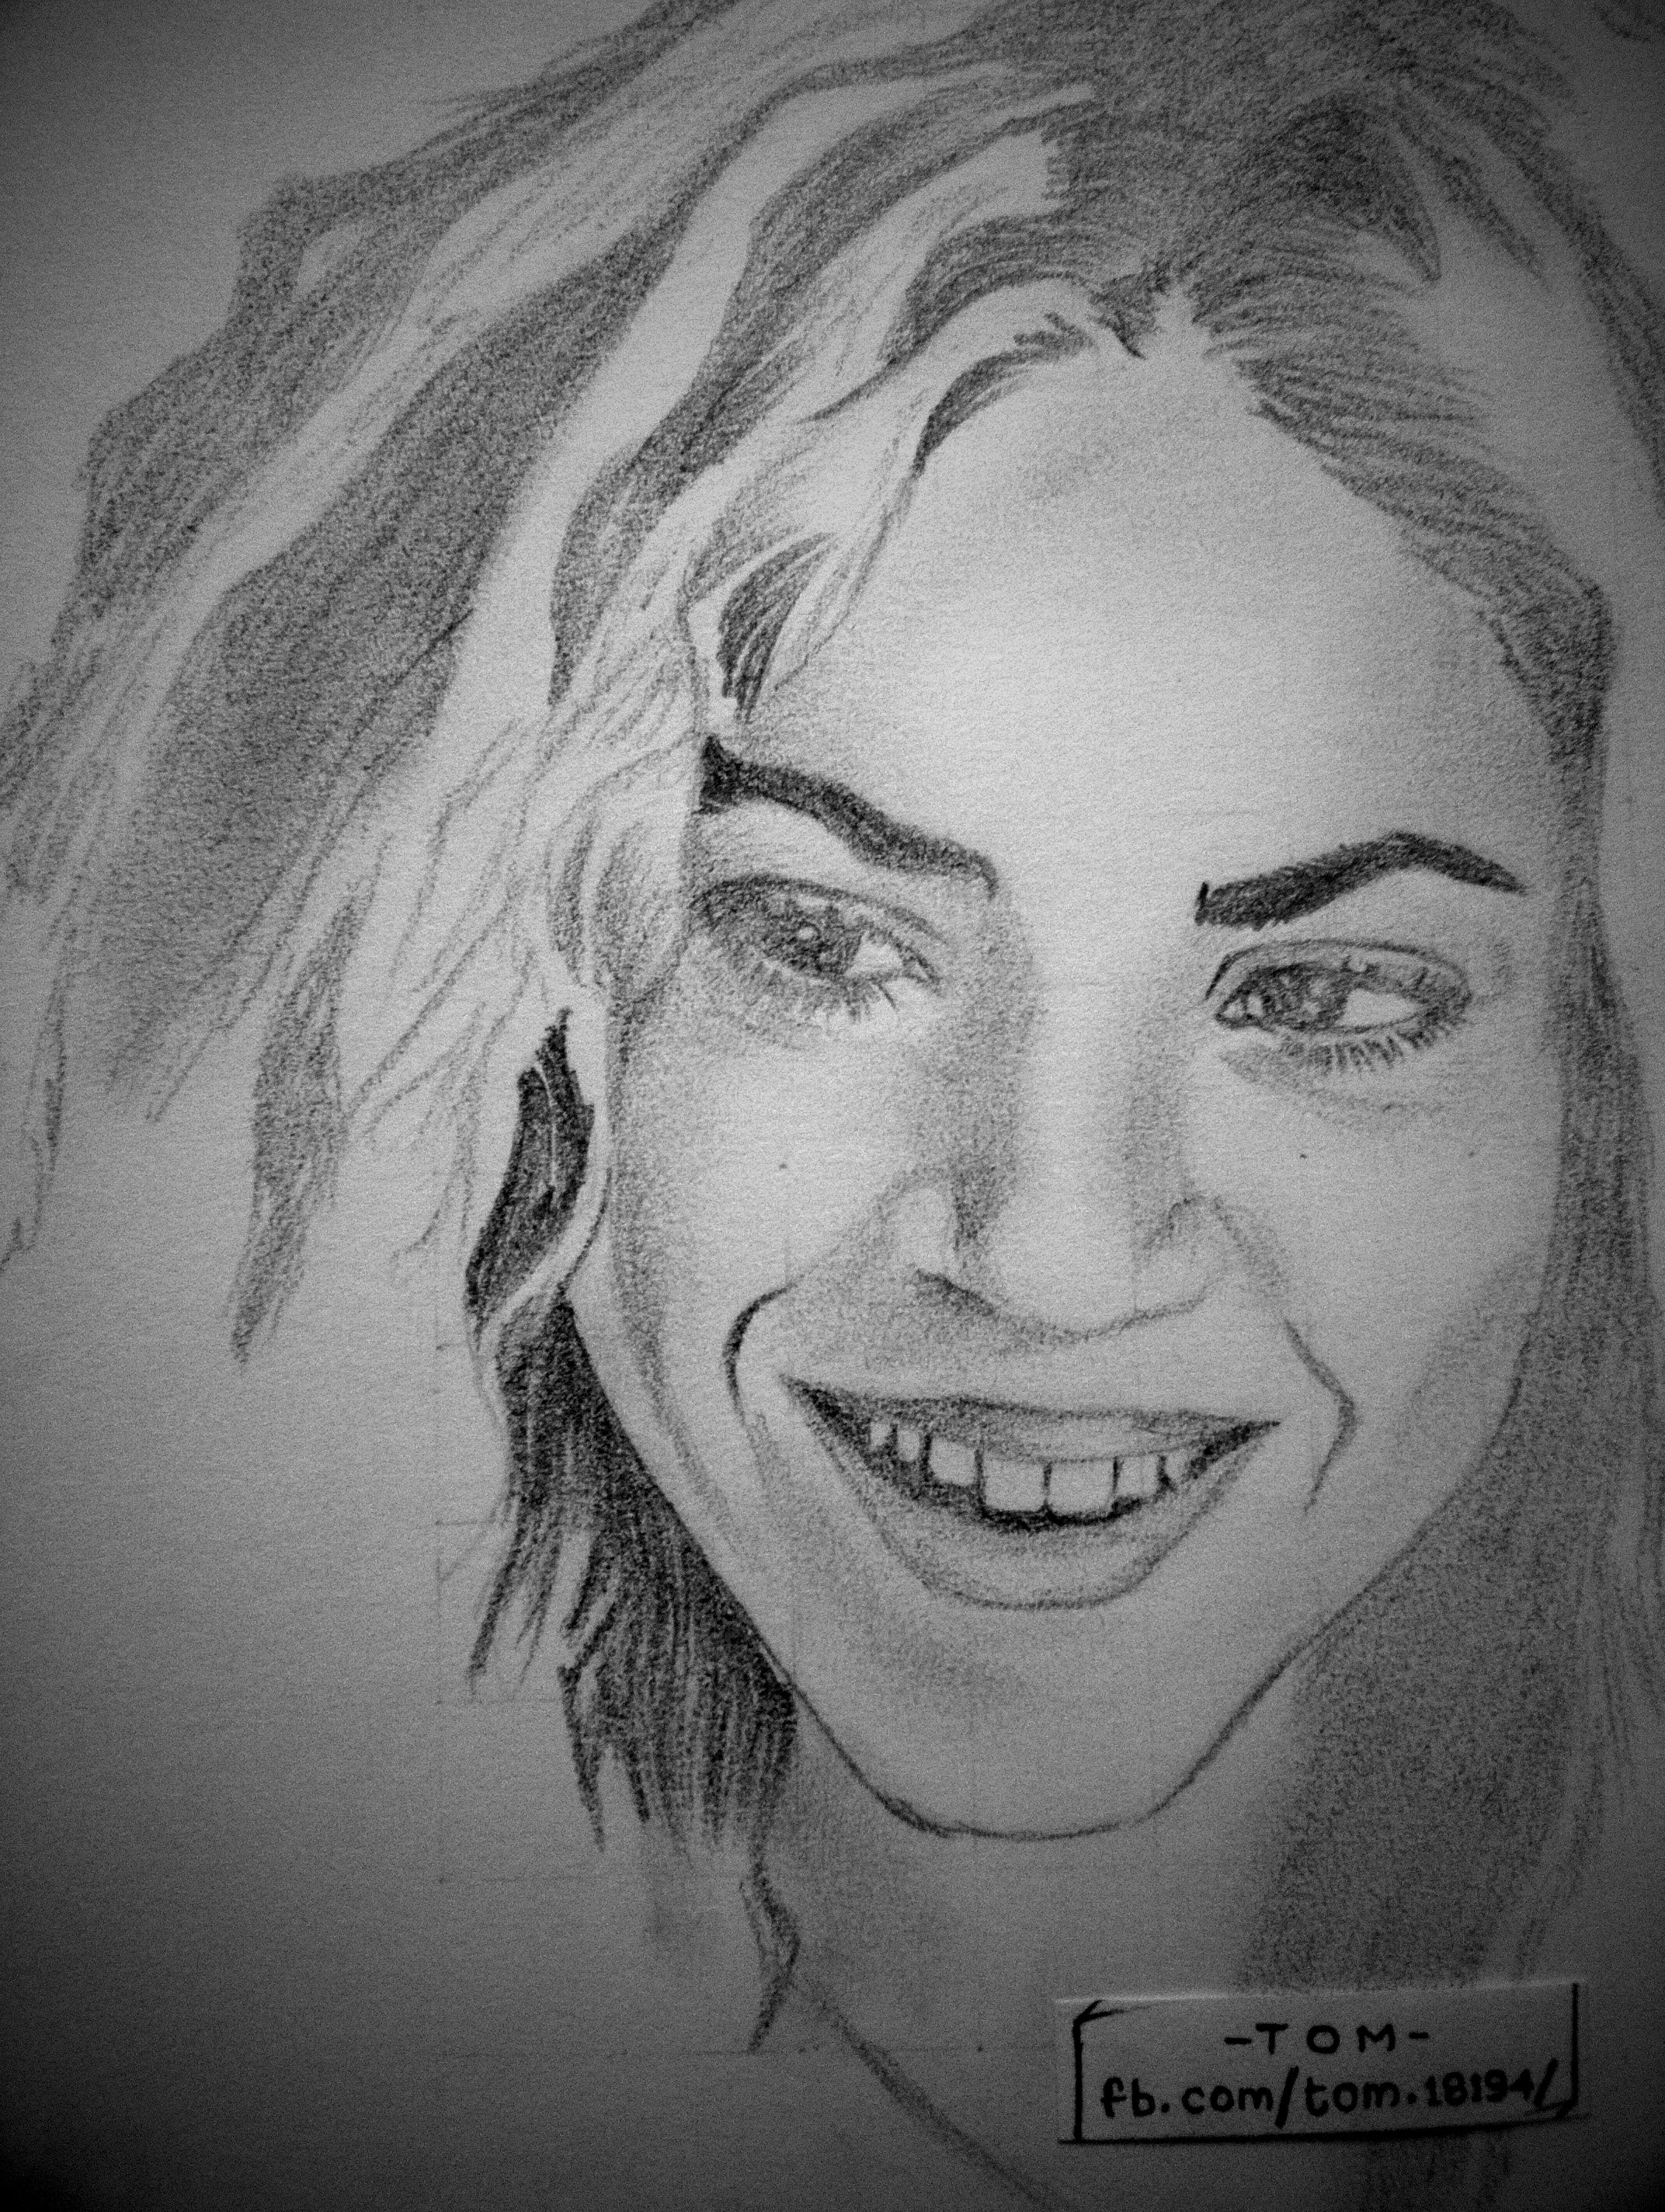 shakira isabel mebarak | drawing | pinterest